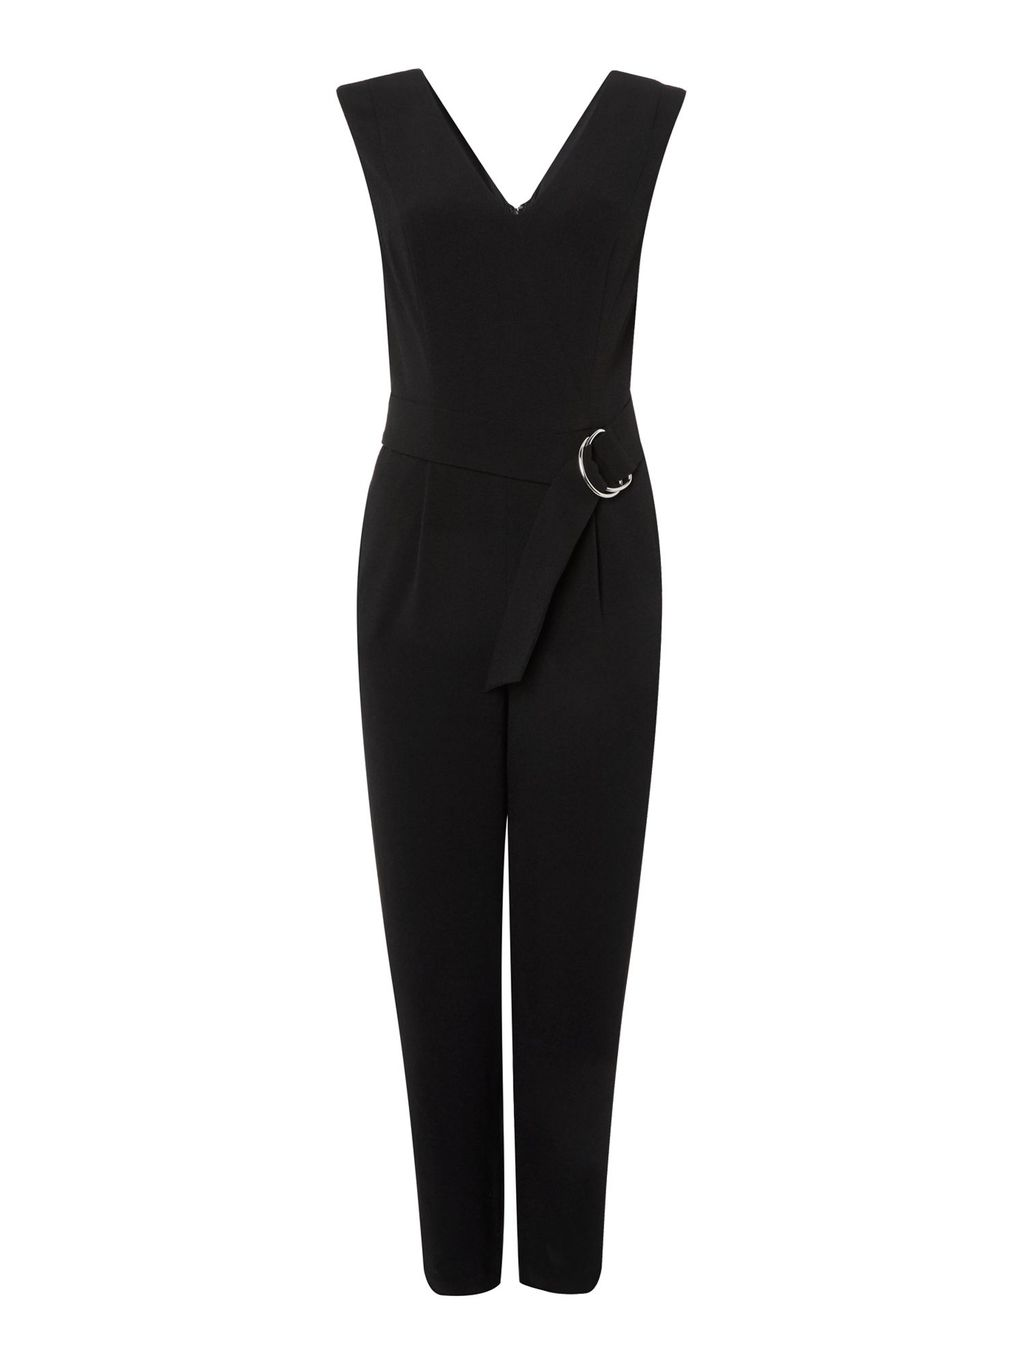 Sofia Jumpsuit, Black - length: standard; neckline: v-neck; pattern: plain; sleeve style: sleeveless; waist detail: belted waist/tie at waist/drawstring; predominant colour: black; occasions: evening; fit: body skimming; fibres: polyester/polyamide - stretch; sleeve length: sleeveless; style: jumpsuit; pattern type: fabric; texture group: jersey - stretchy/drapey; season: a/w 2016